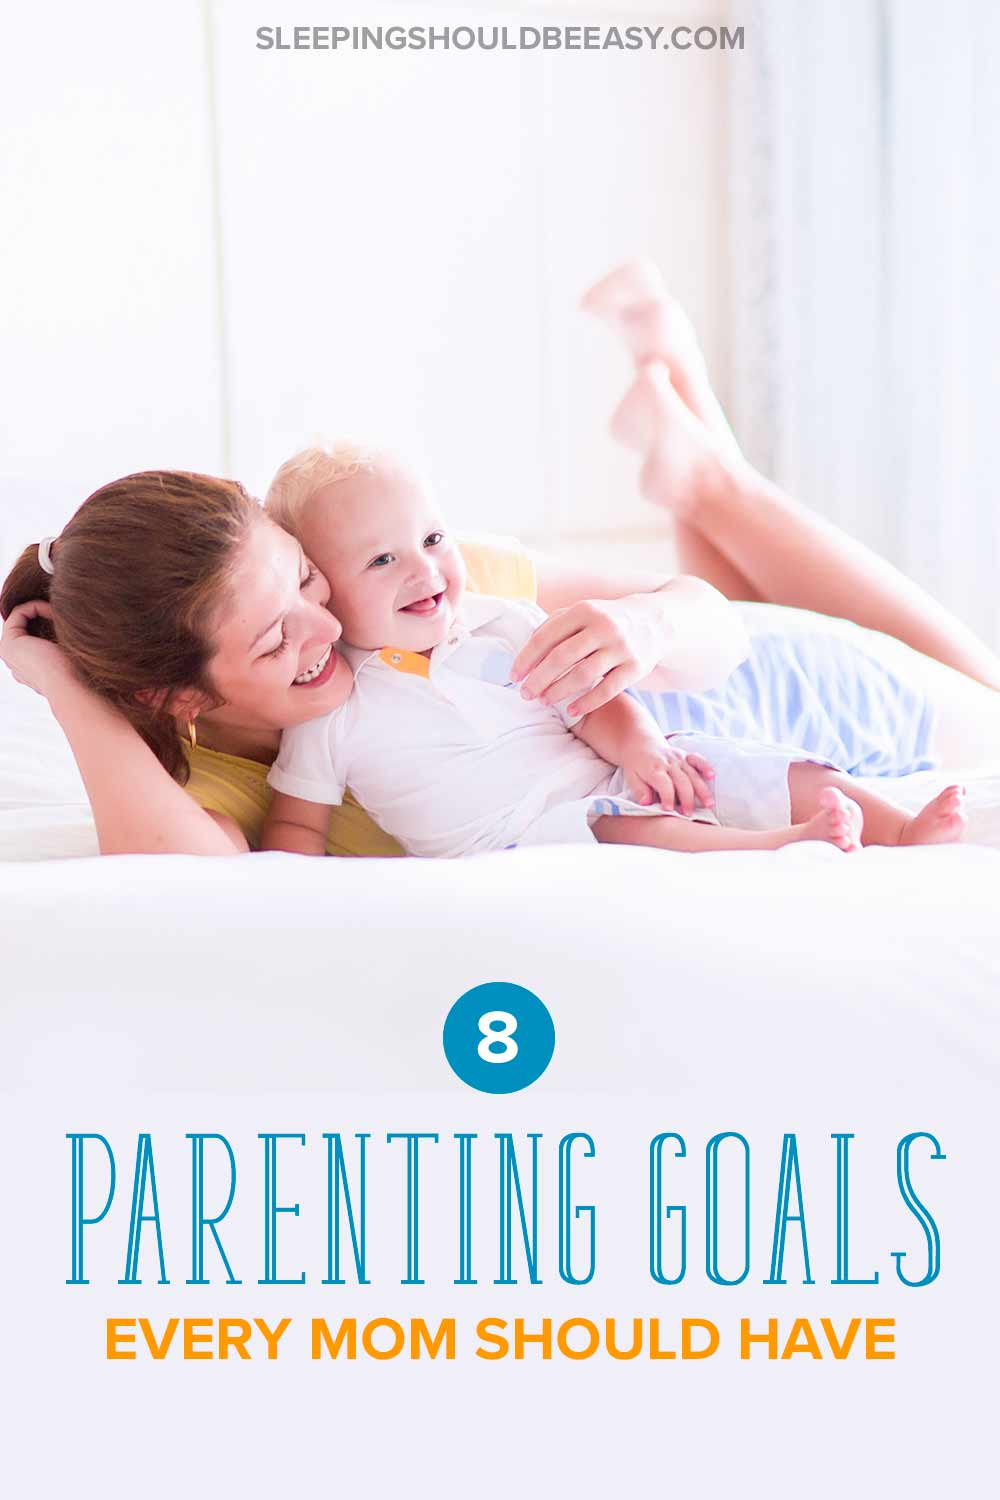 8 parenting goals every mom should have